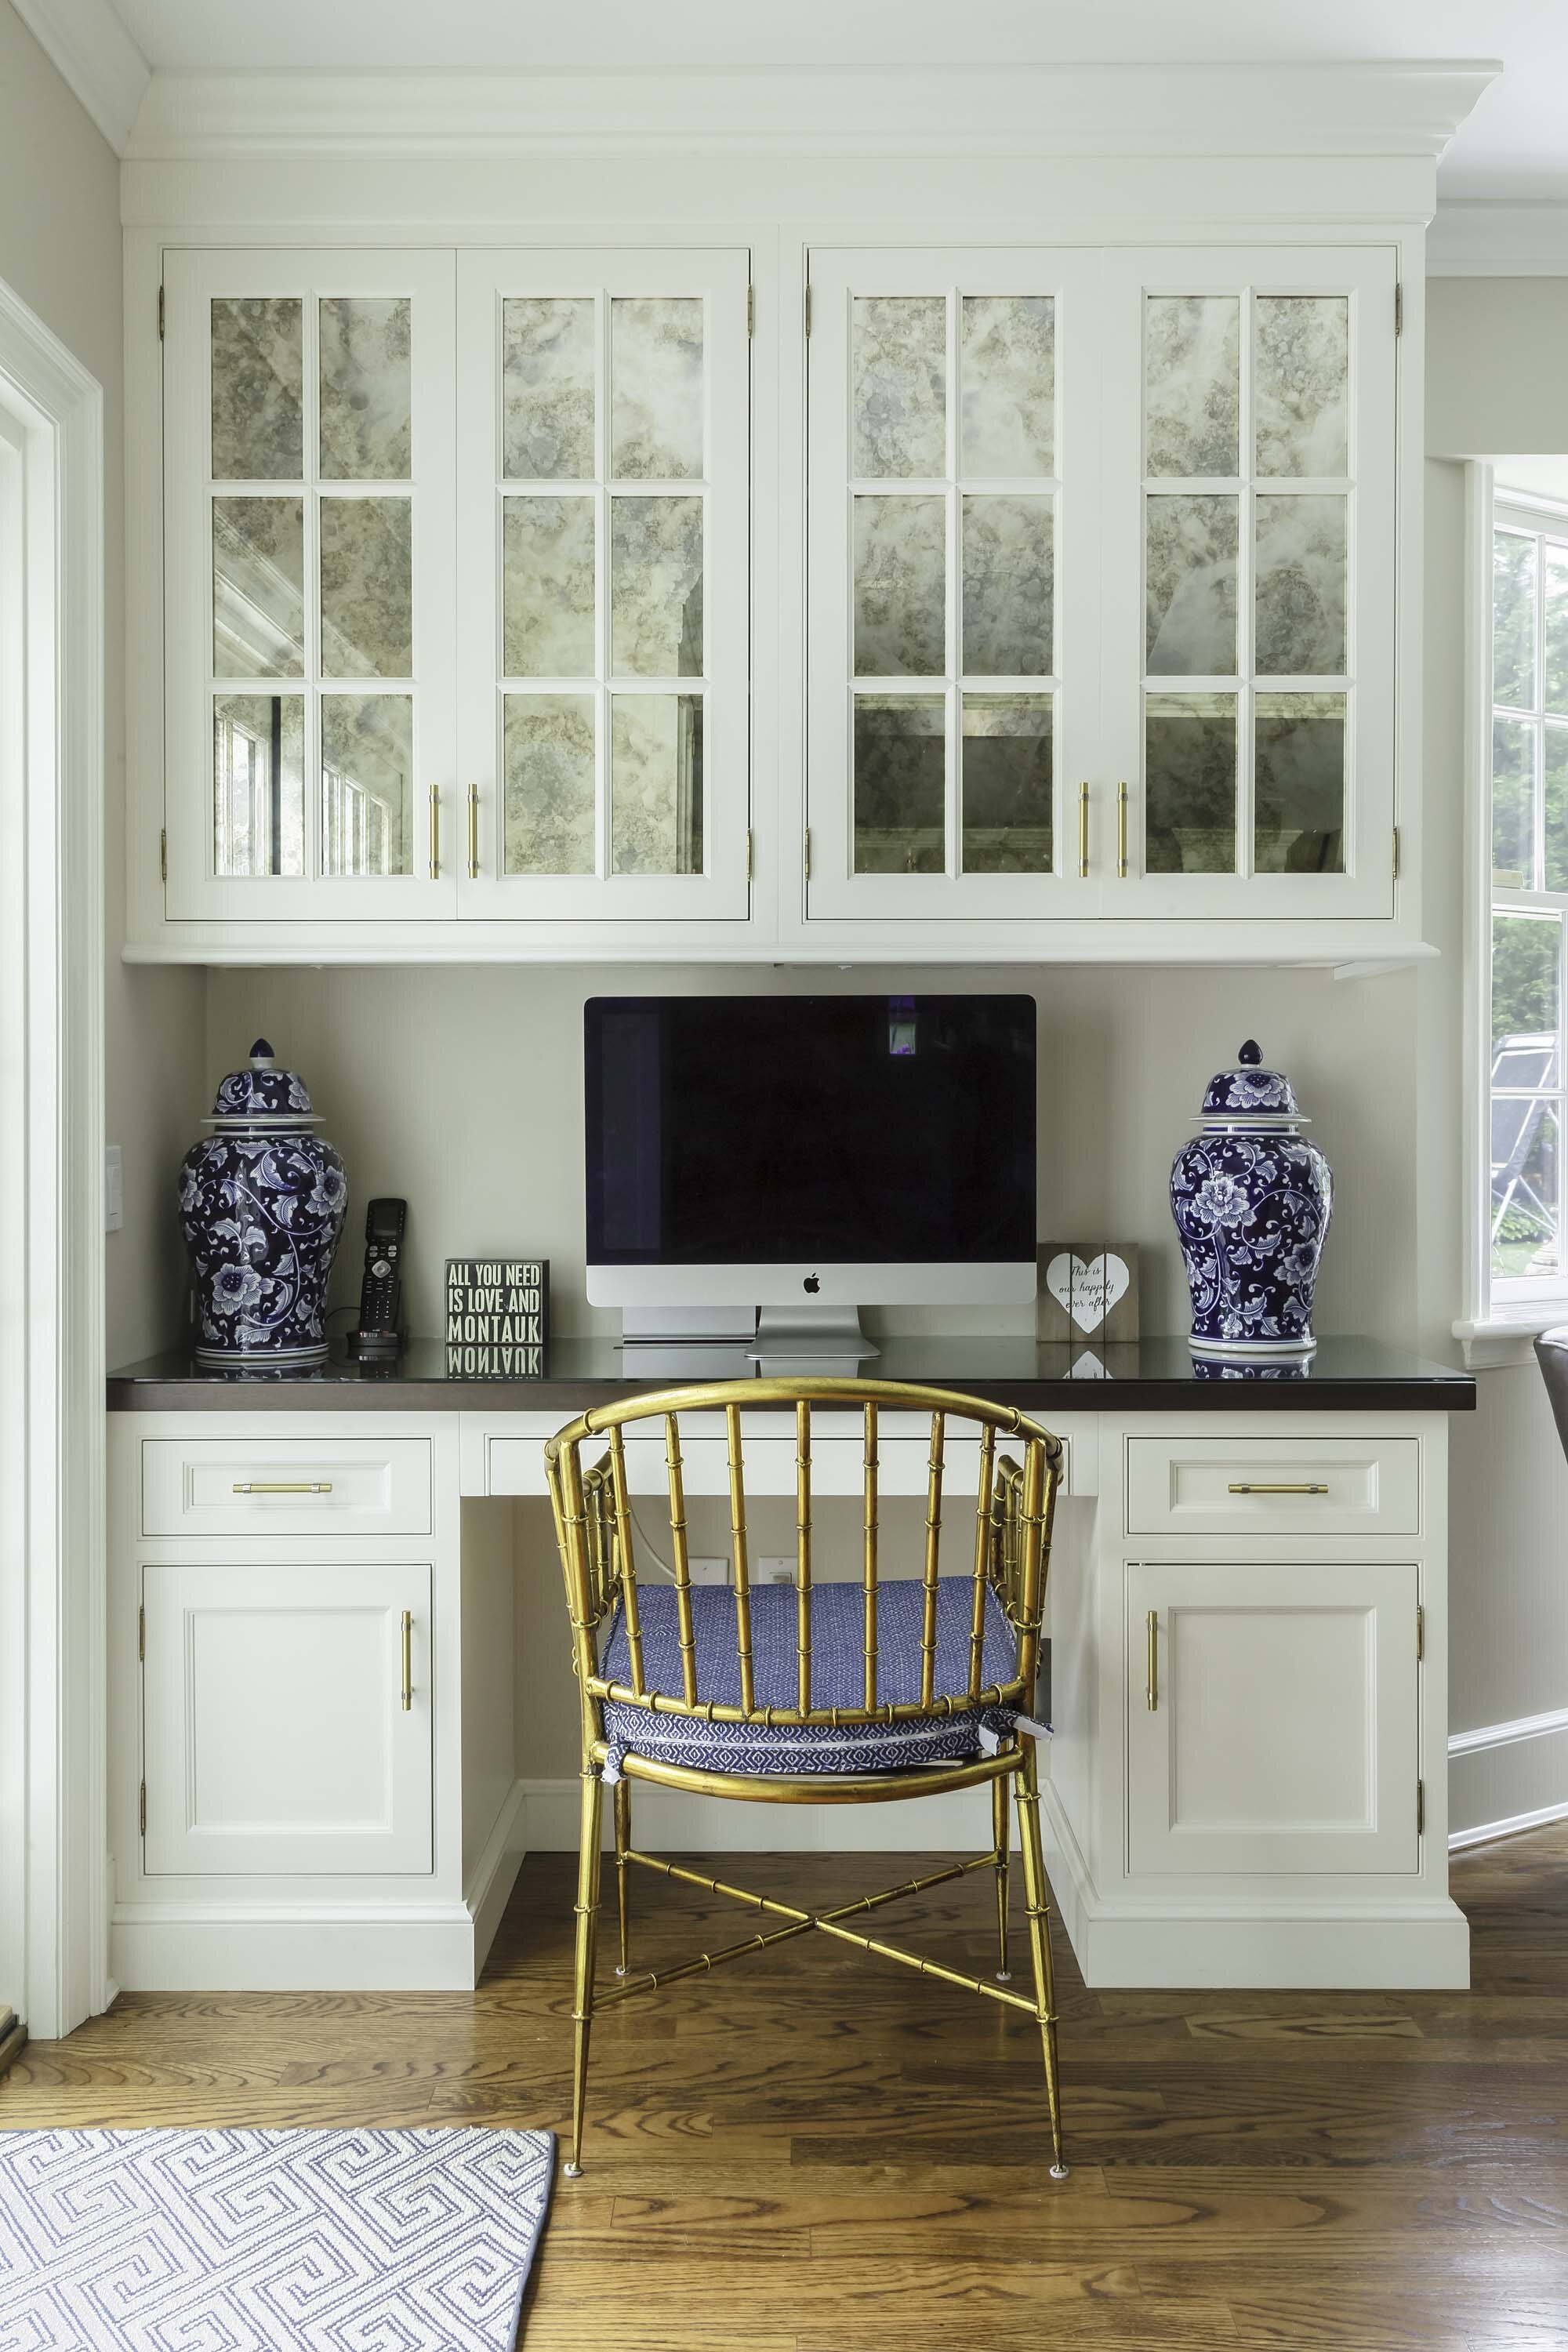 Custom desk is part of this transitional white kitchen